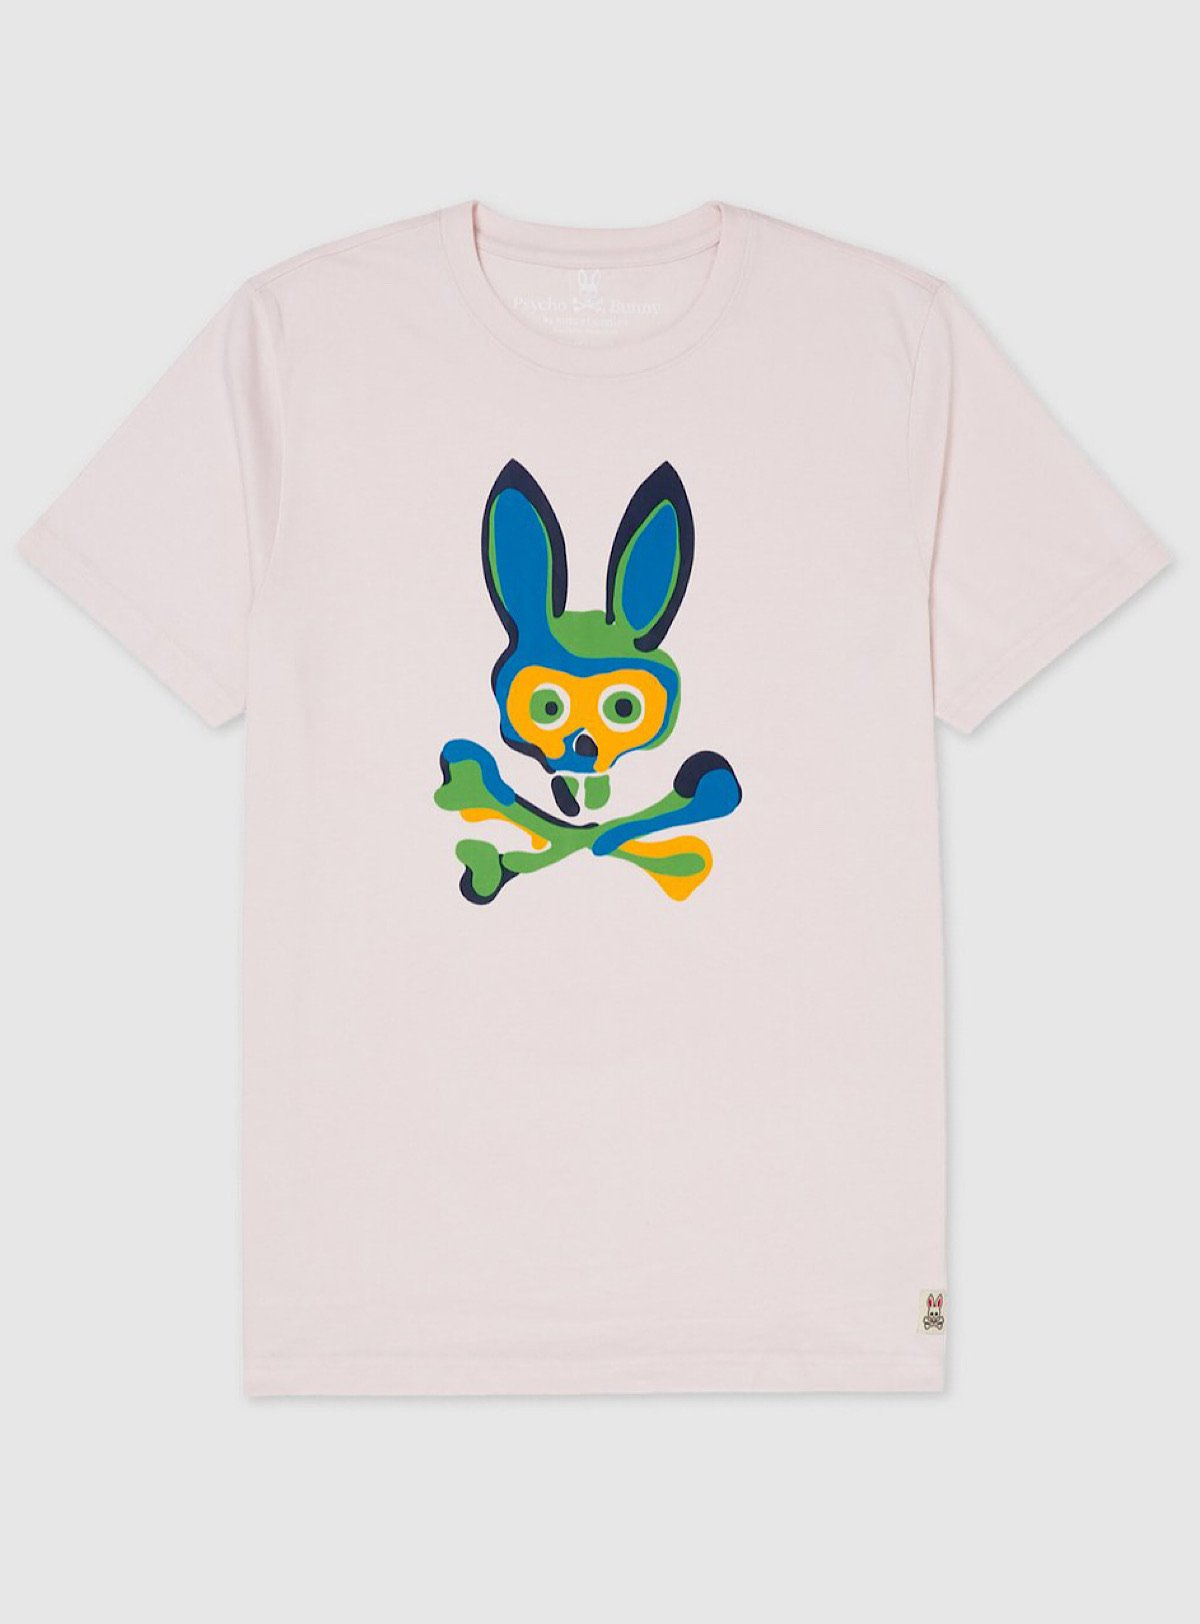 Psycho Bunny T-Shirt - Dallington - Light Pink